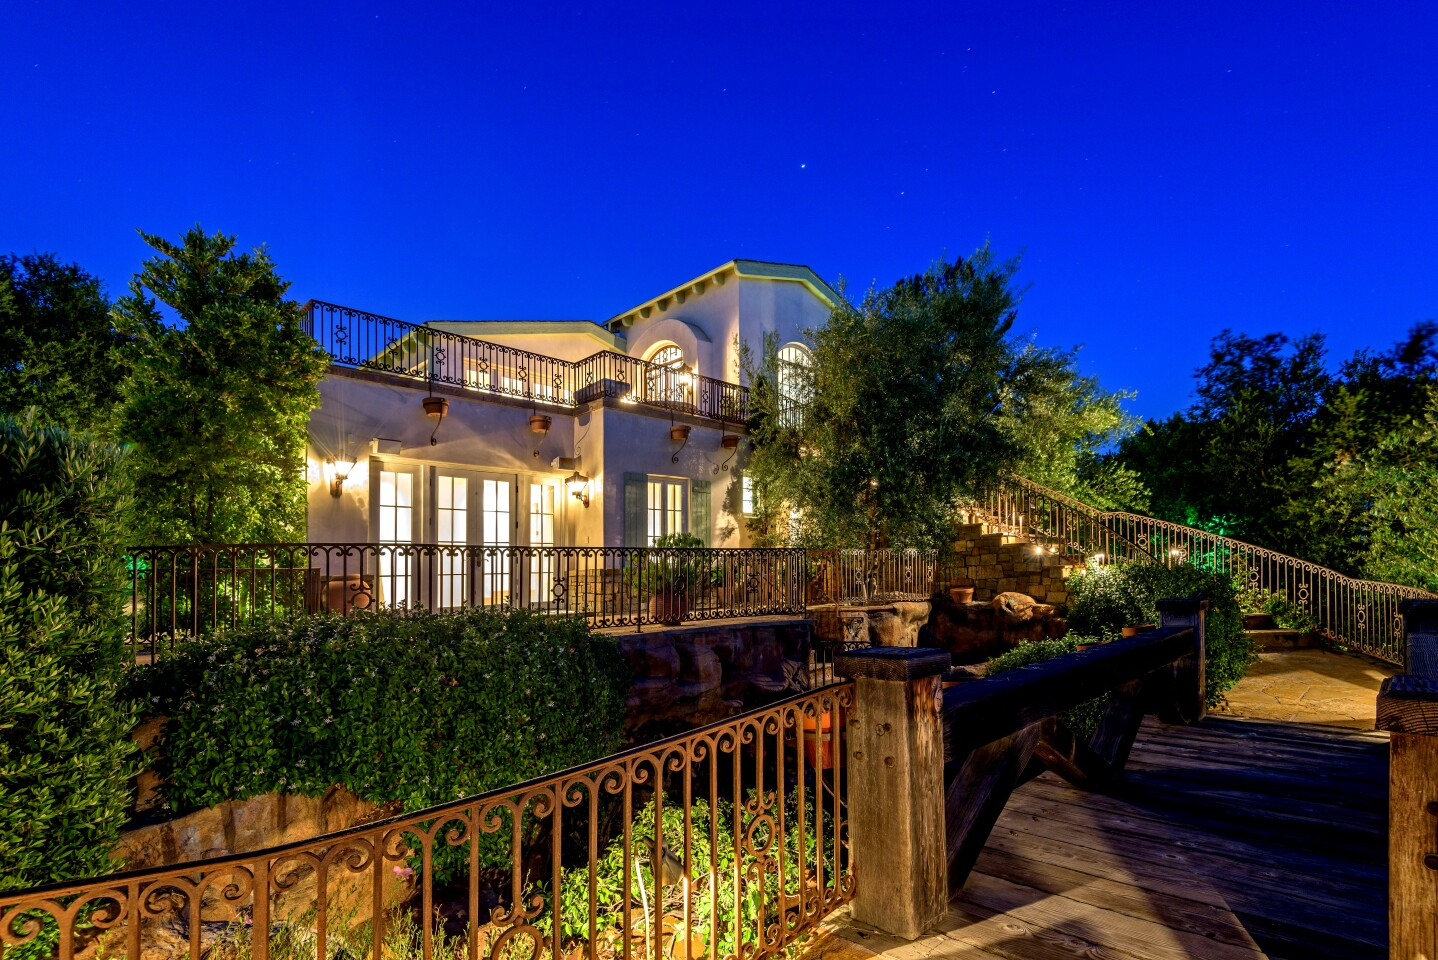 Actress Eva Longoria found a buyer for his Hollywood Hills compound in St. Louis Cardinals owner Bill DeWitt. The 2.75-acre compound, once owned by Tom Cruise, has multiple structures including two studios, a villa and a four-bedroom guest house. Stone pathways and bridges lend a whimsical quality to the grounds, which feature a resort-style pool lined with boulders.